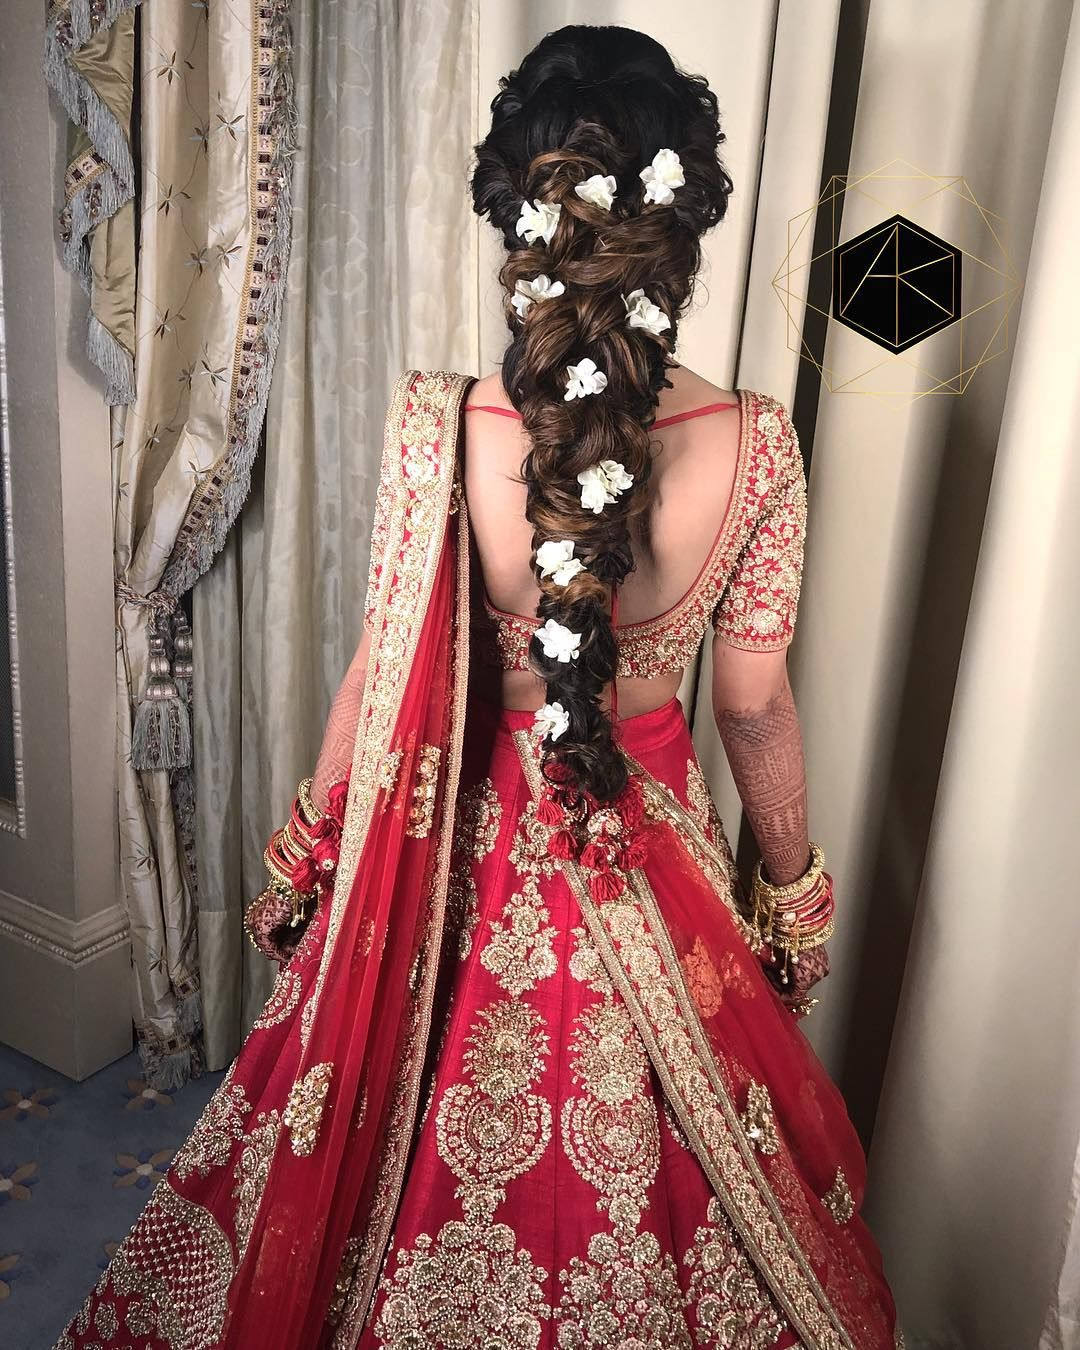 The Double Strand Braid To See More Http Www Functionmania Com Blog Braided Hair Looks Indian Wedding Hairstyles Indian Bridal Hairstyles Indian Hairstyles